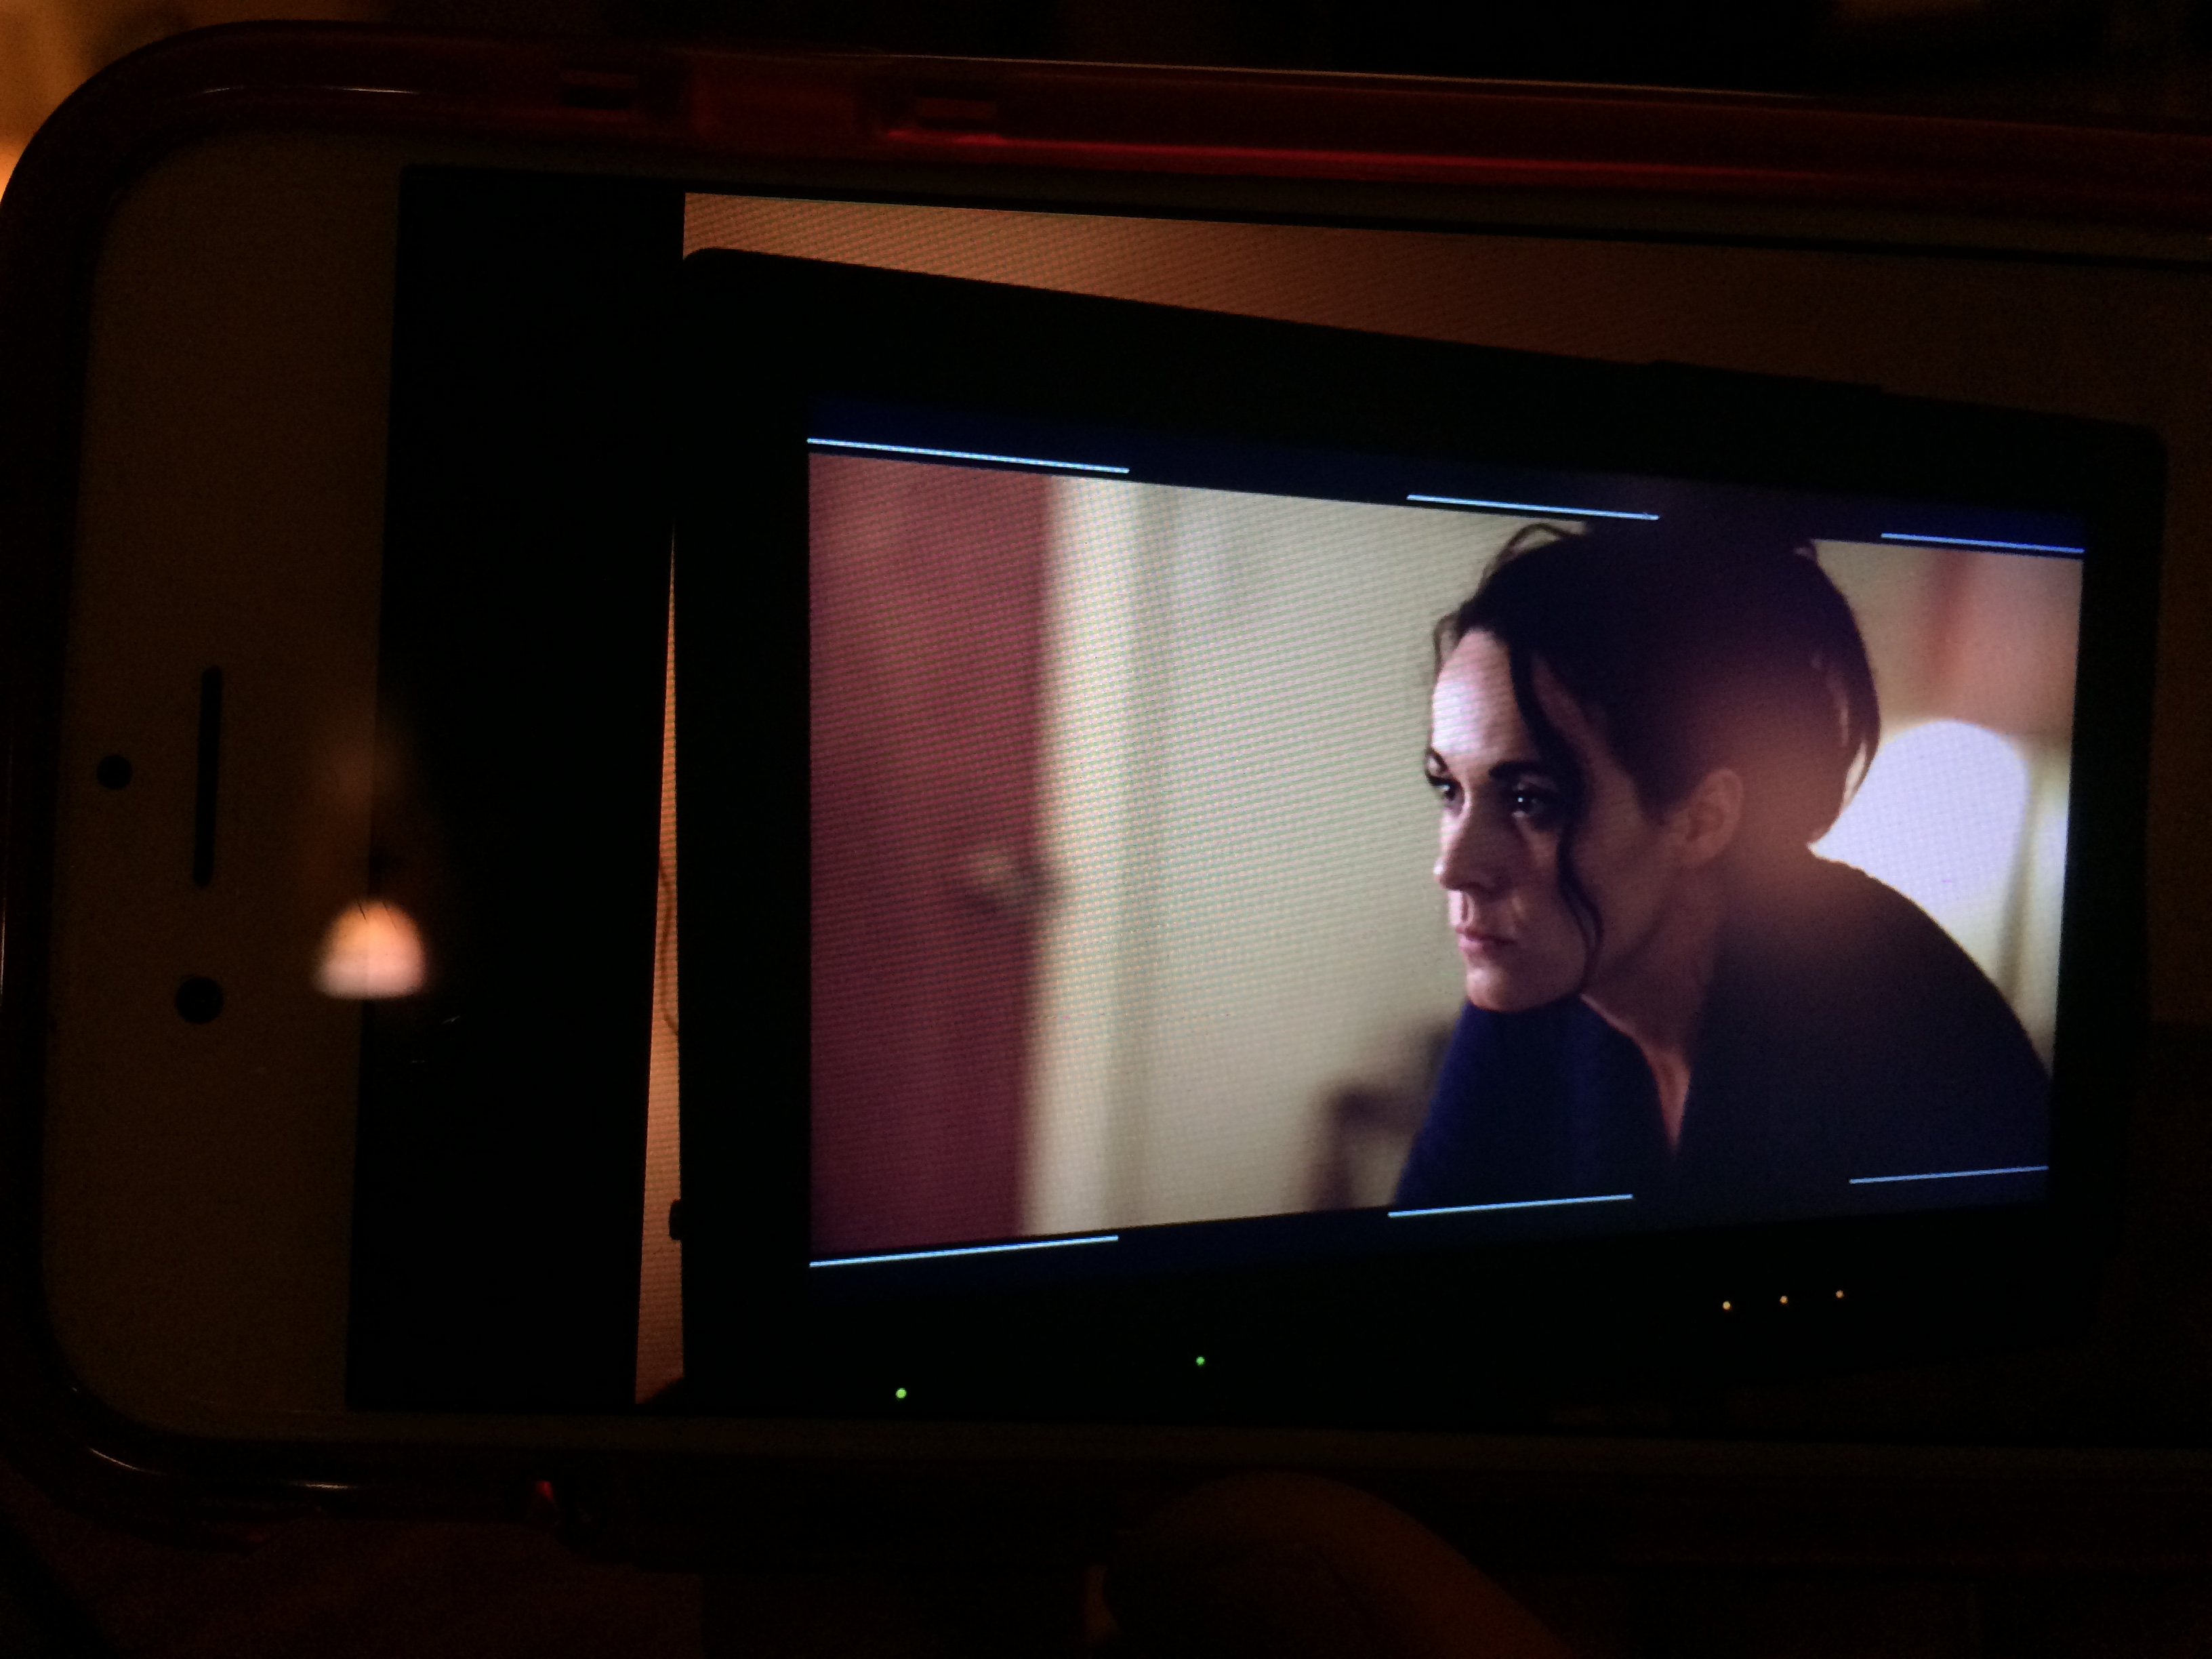 Monitor Still from HIF shoot